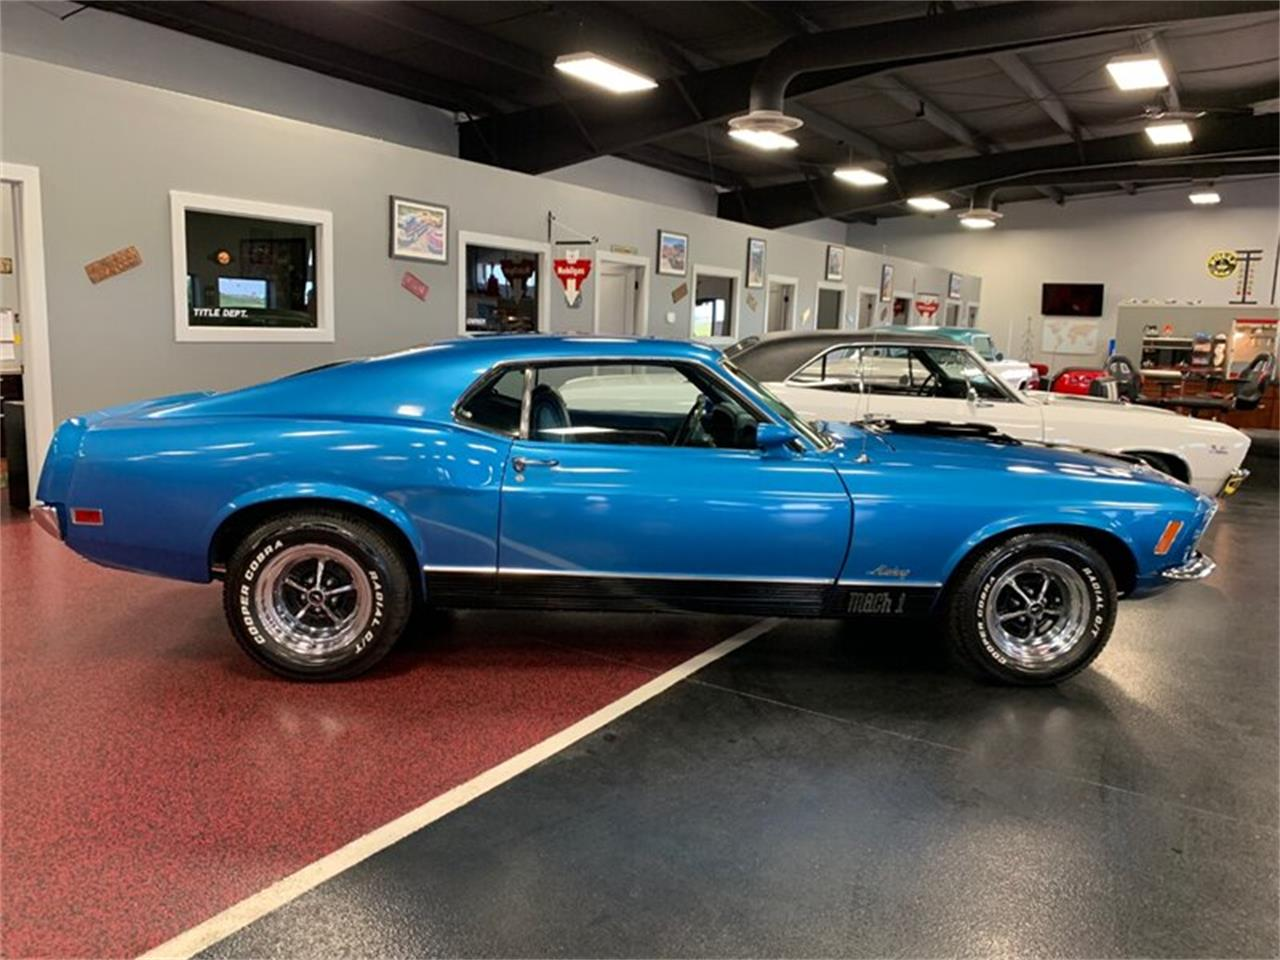 Large Picture of Classic 1970 Mustang Mach 1 located in North Dakota Offered by Rides Auto Sales - QGAG